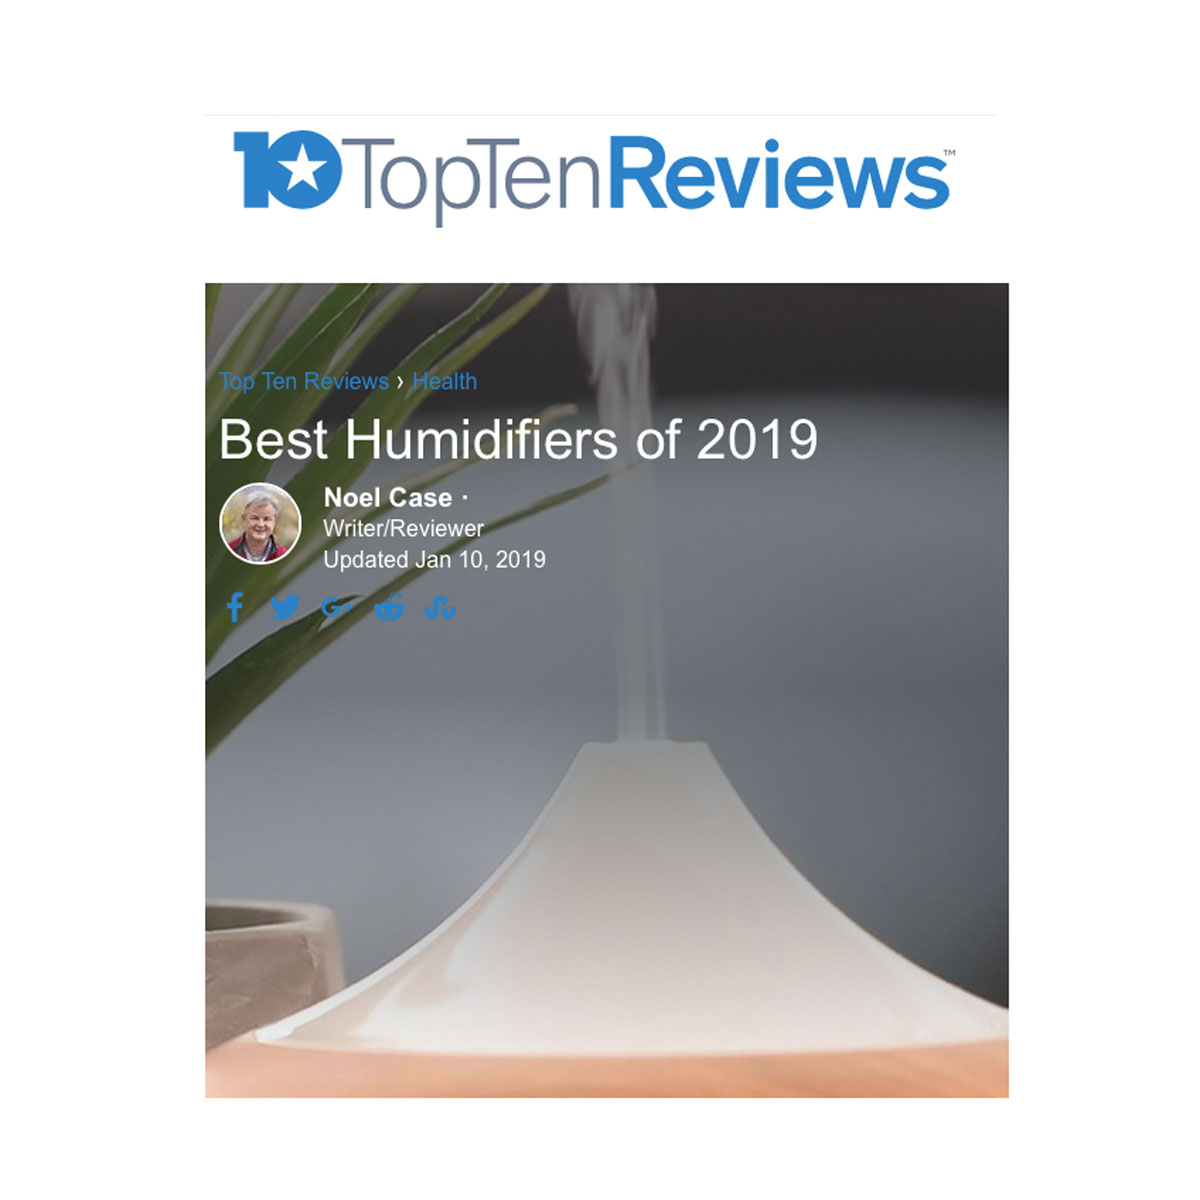 TopTen Reviews Best Humidifiers 2019 asthma & allergy friendly Certification Program